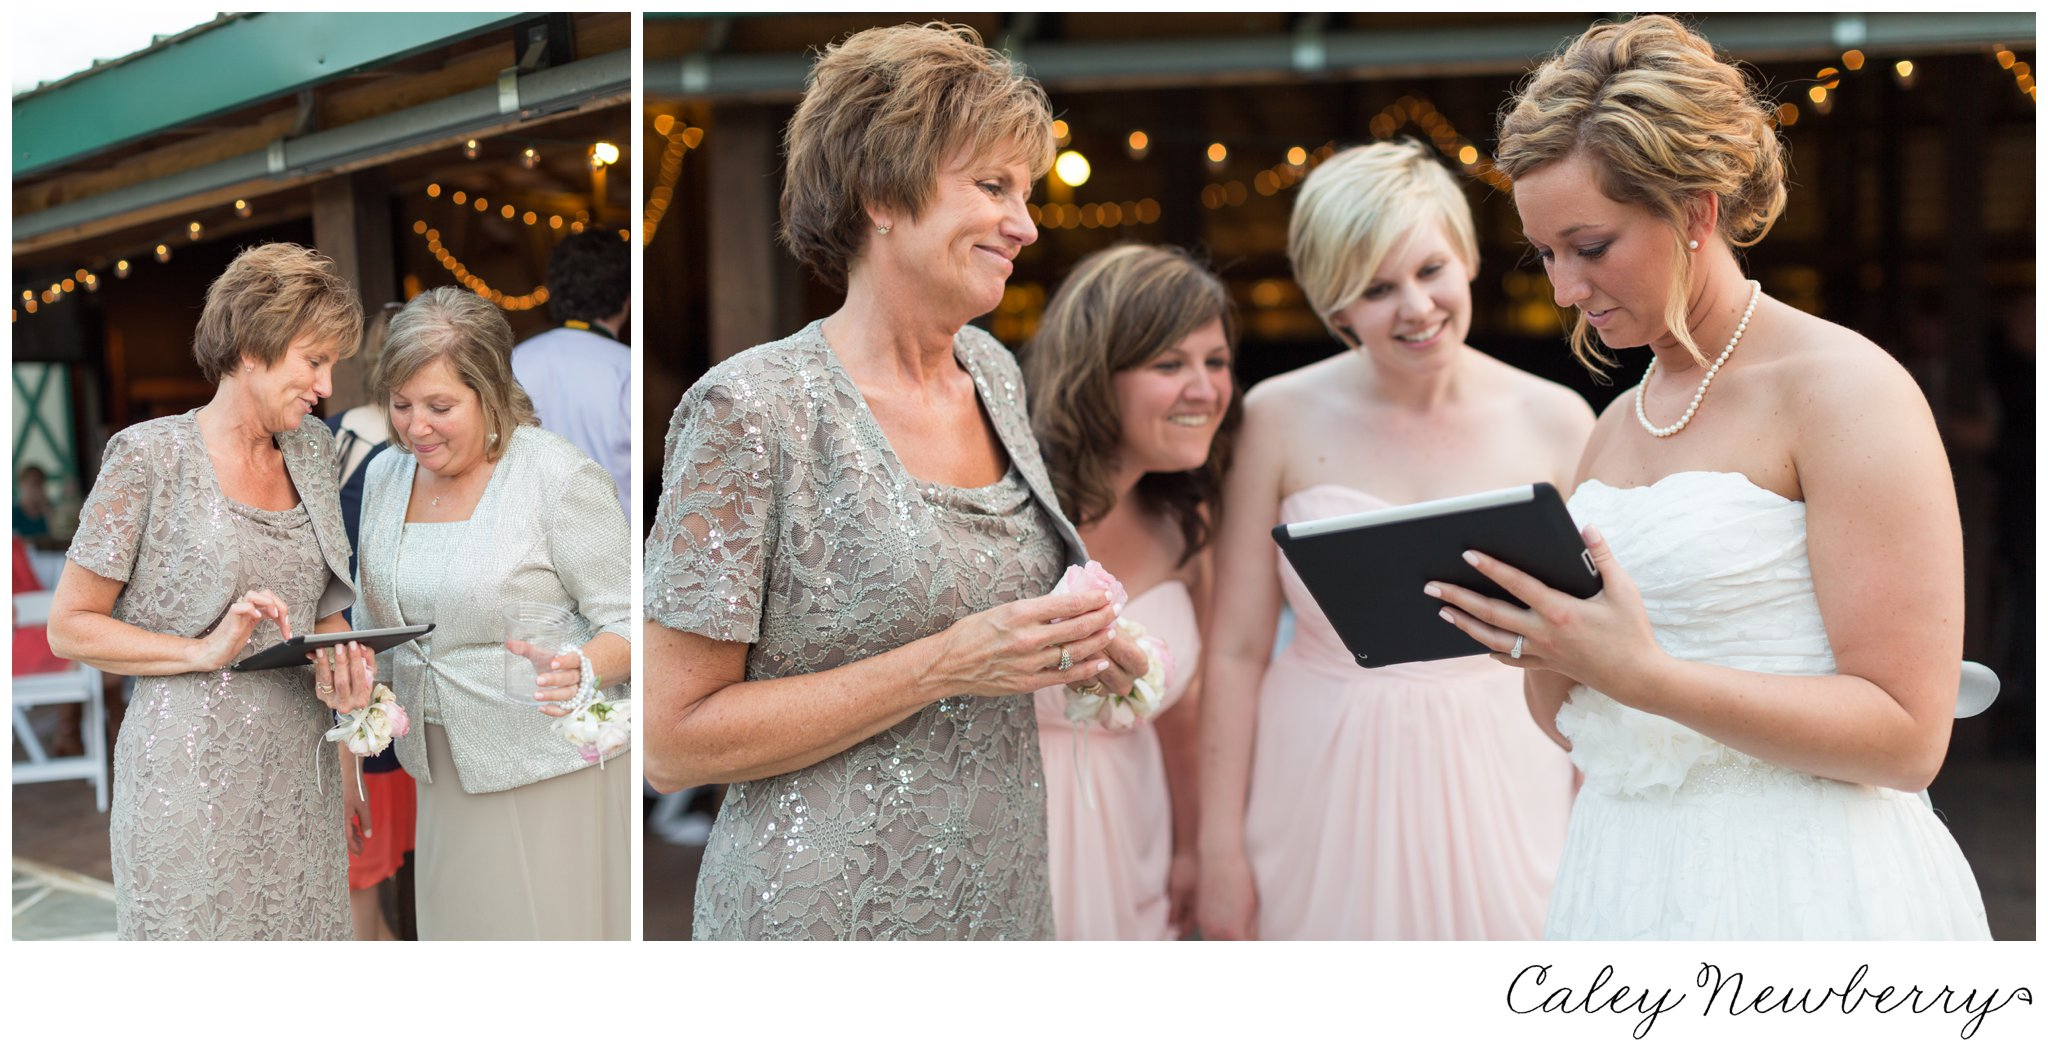 caley-newberry-wedding-photo-preview.jpg